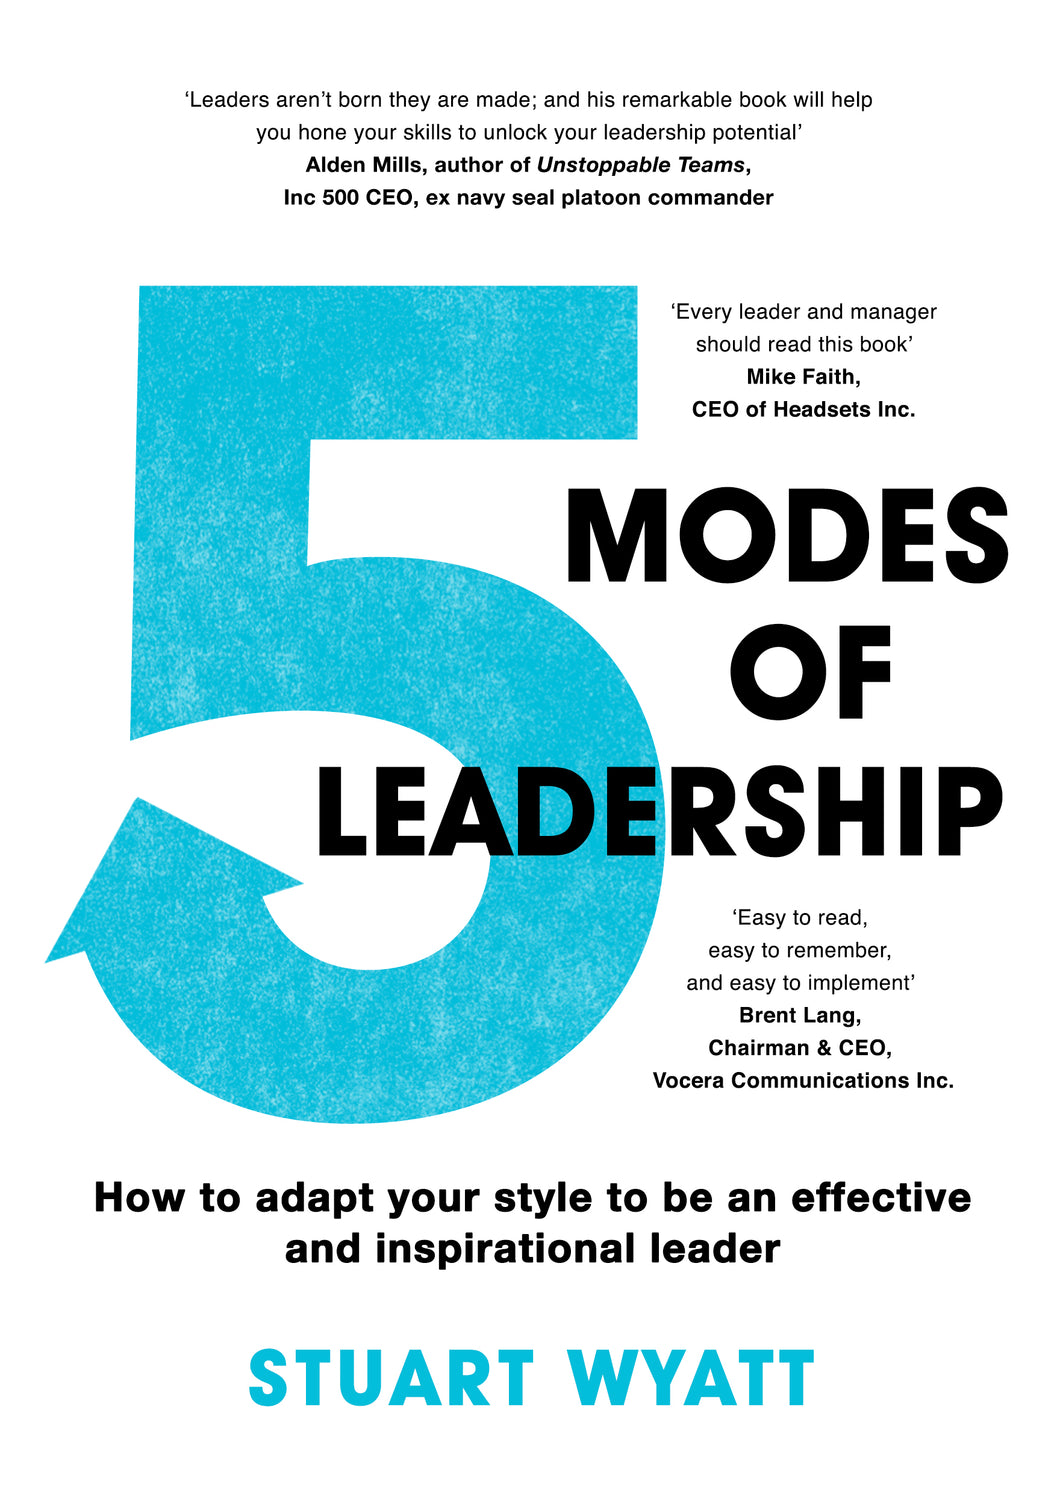 Five Modes of Leadership